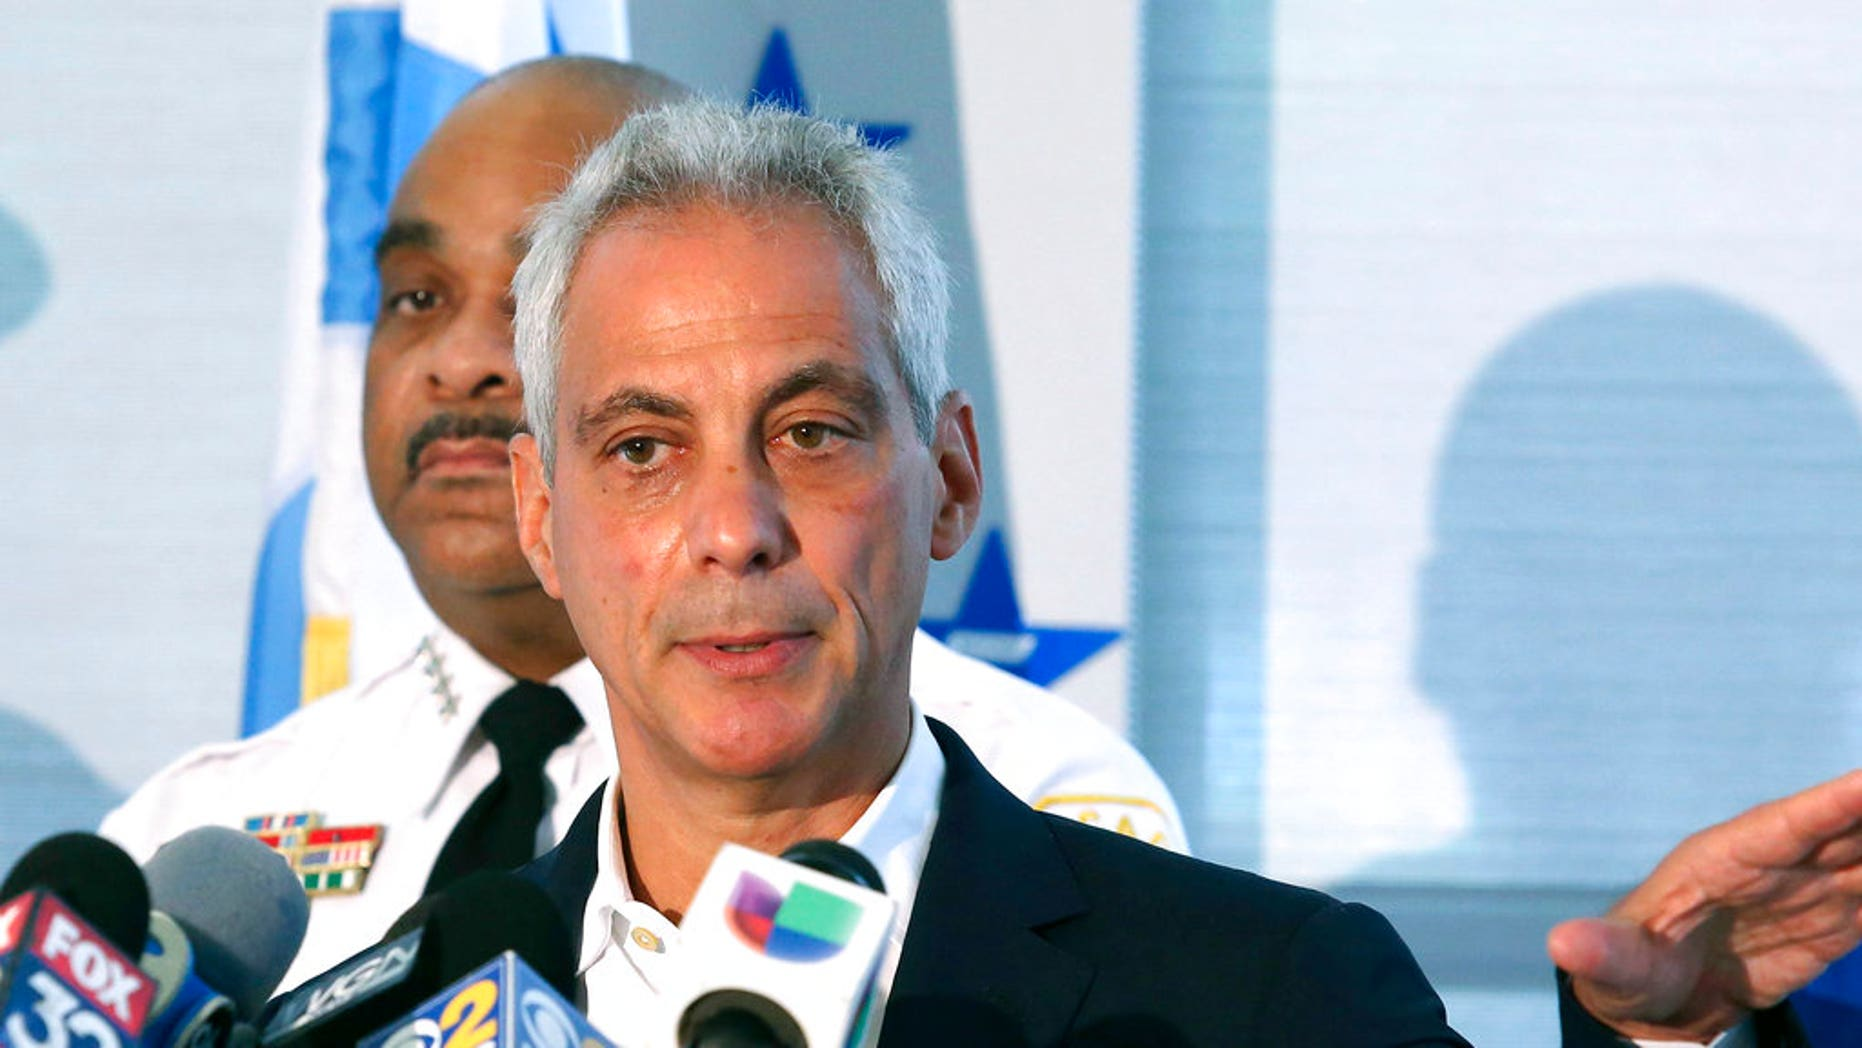 FILE: Chicago Mayor Rahm Emanuel speaks at a news conference in Chicago.